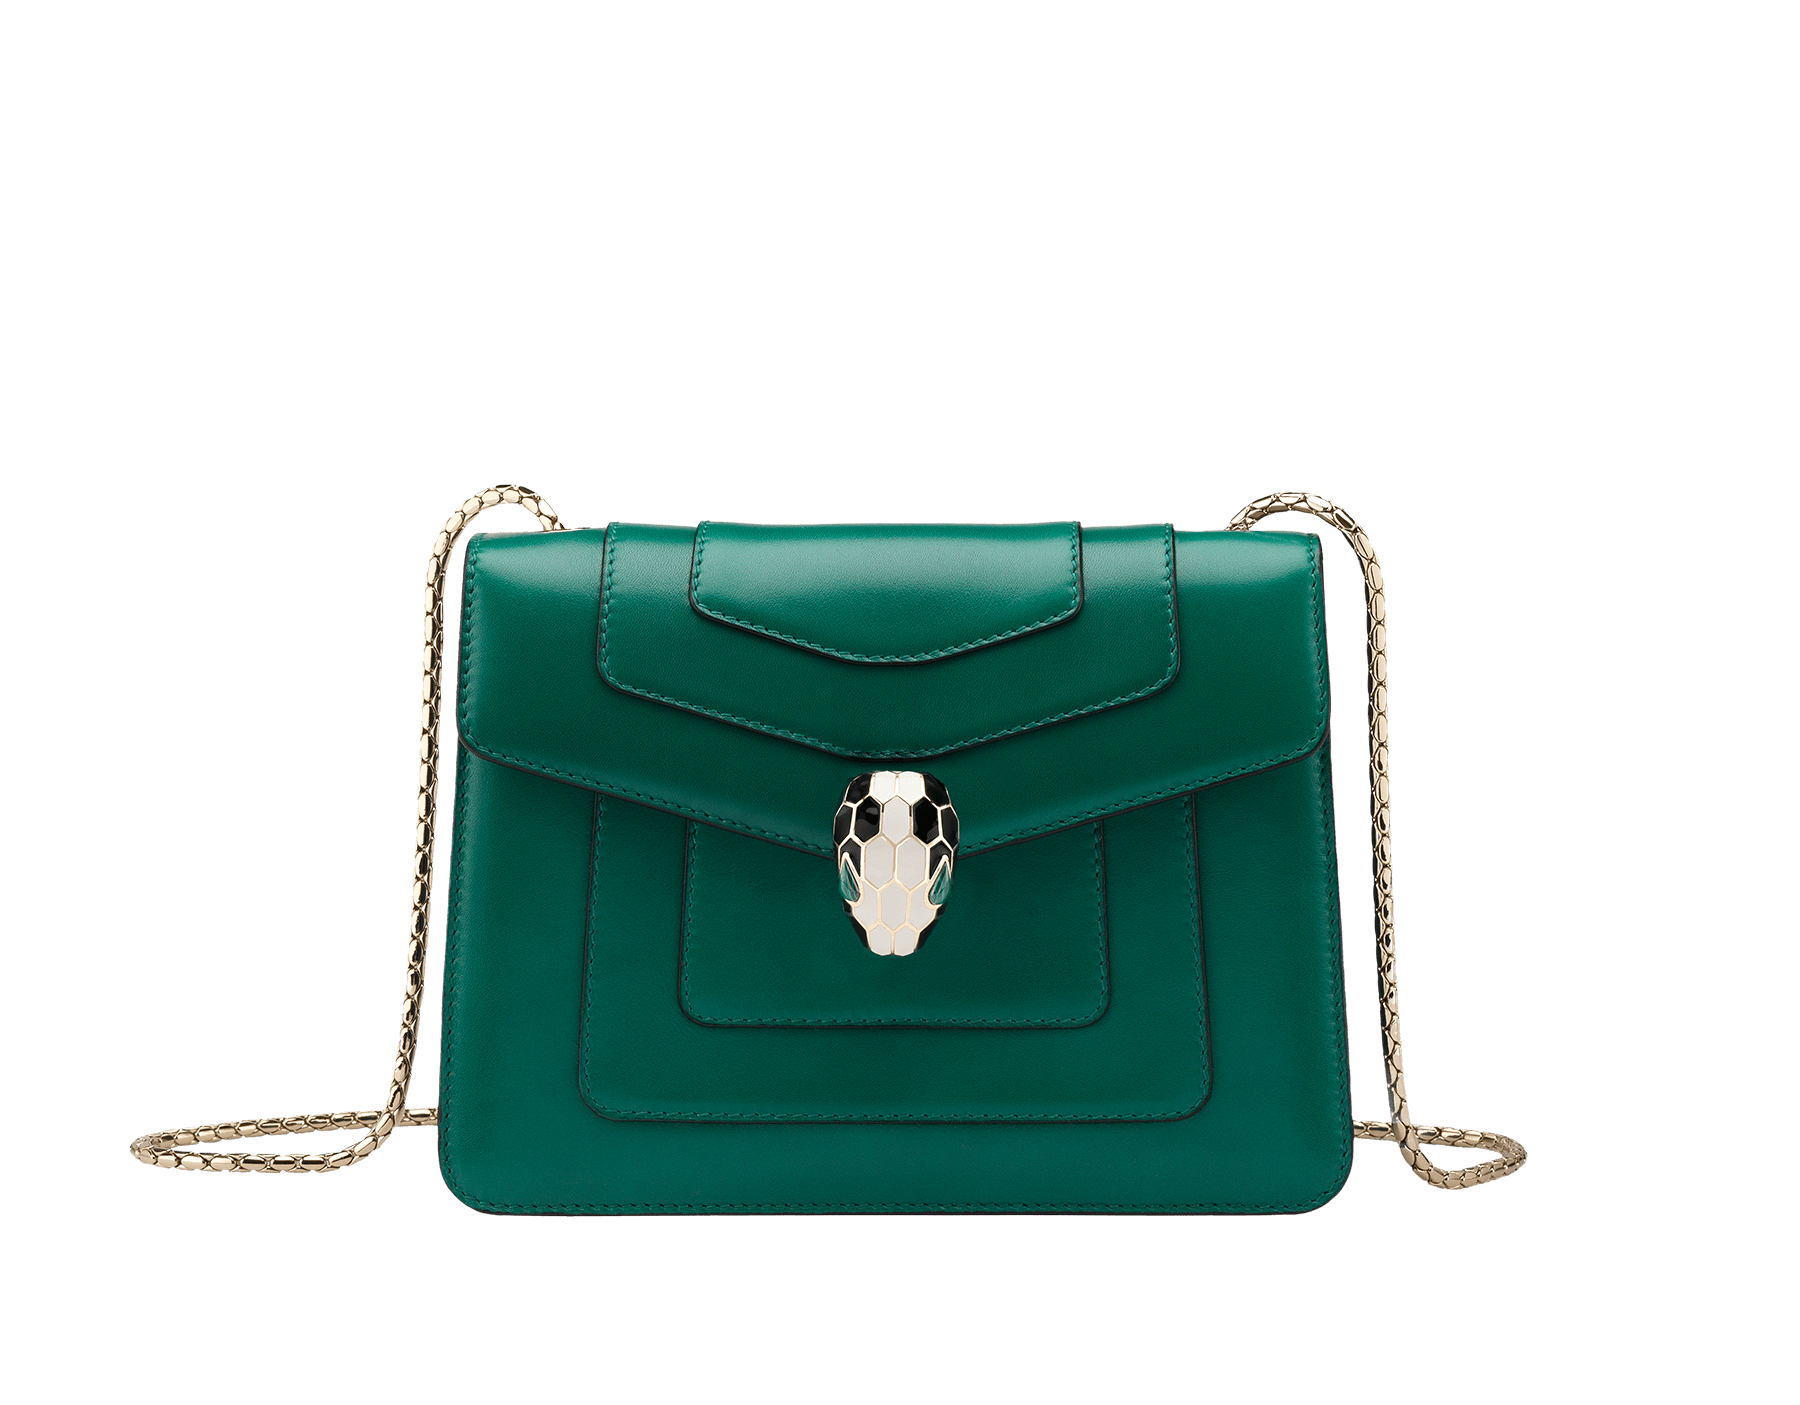 Shoulder bag Serpenti Forever in emerald green calf leather with brass light gold plated Serpenti head closure in black and white enamel with eyes in malachite. 422-CLa image 1